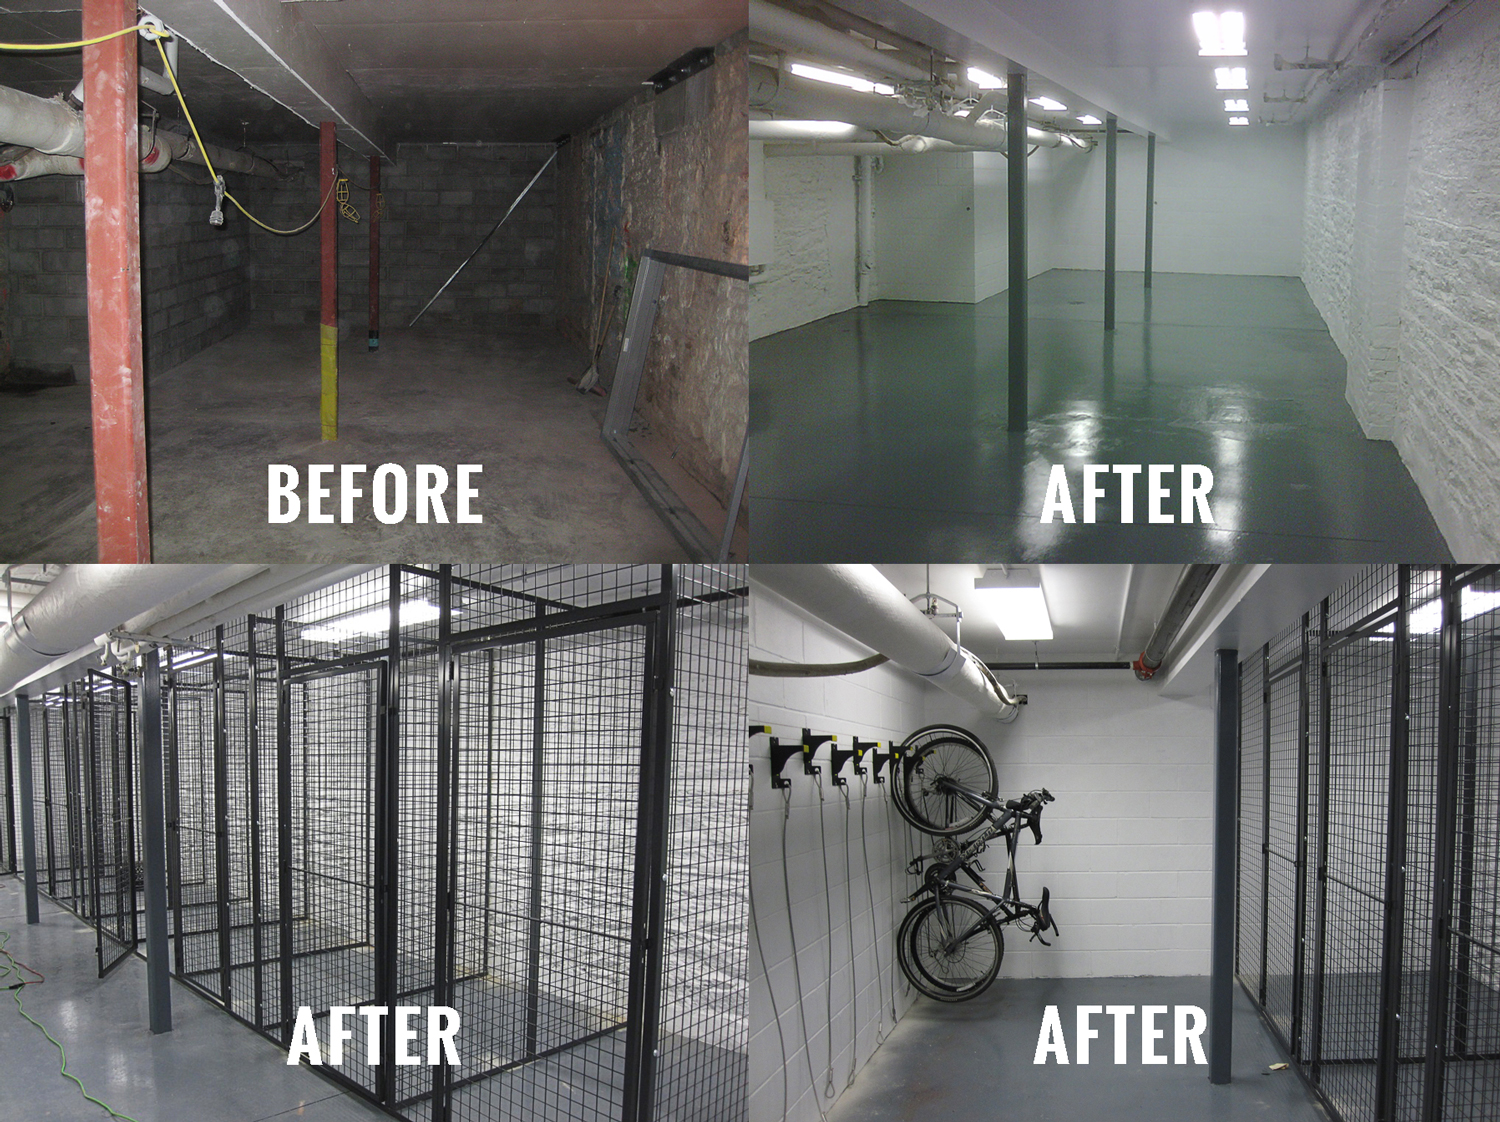 Giant Industrial Installations can literally transform your existing building storage areas into clean, organized, and profit-generating storage rooms.